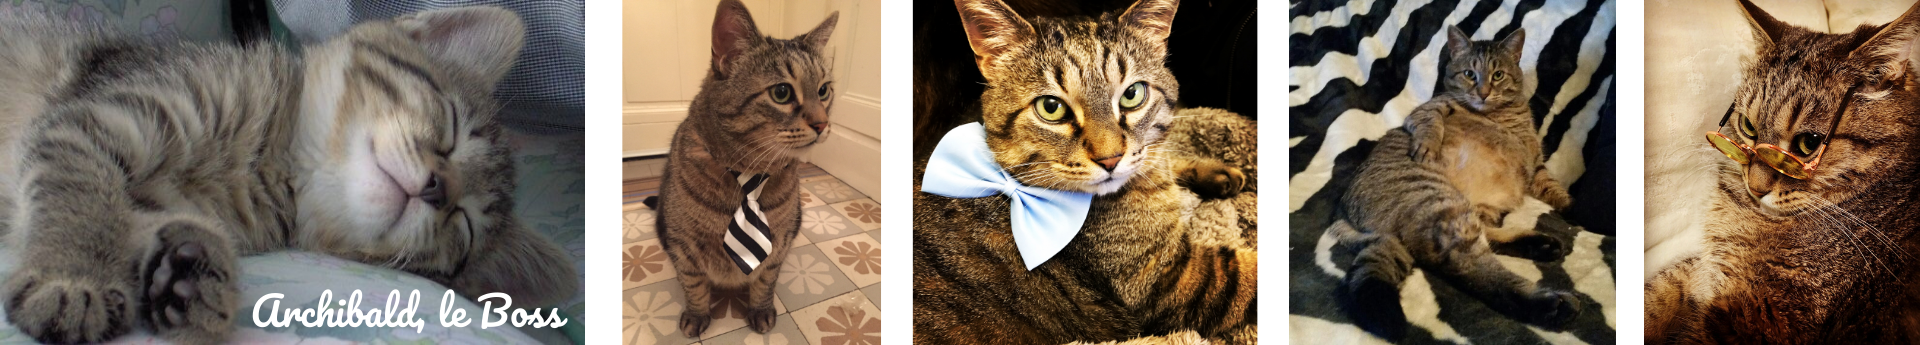 archibald boss mode pour chats fashion for cats